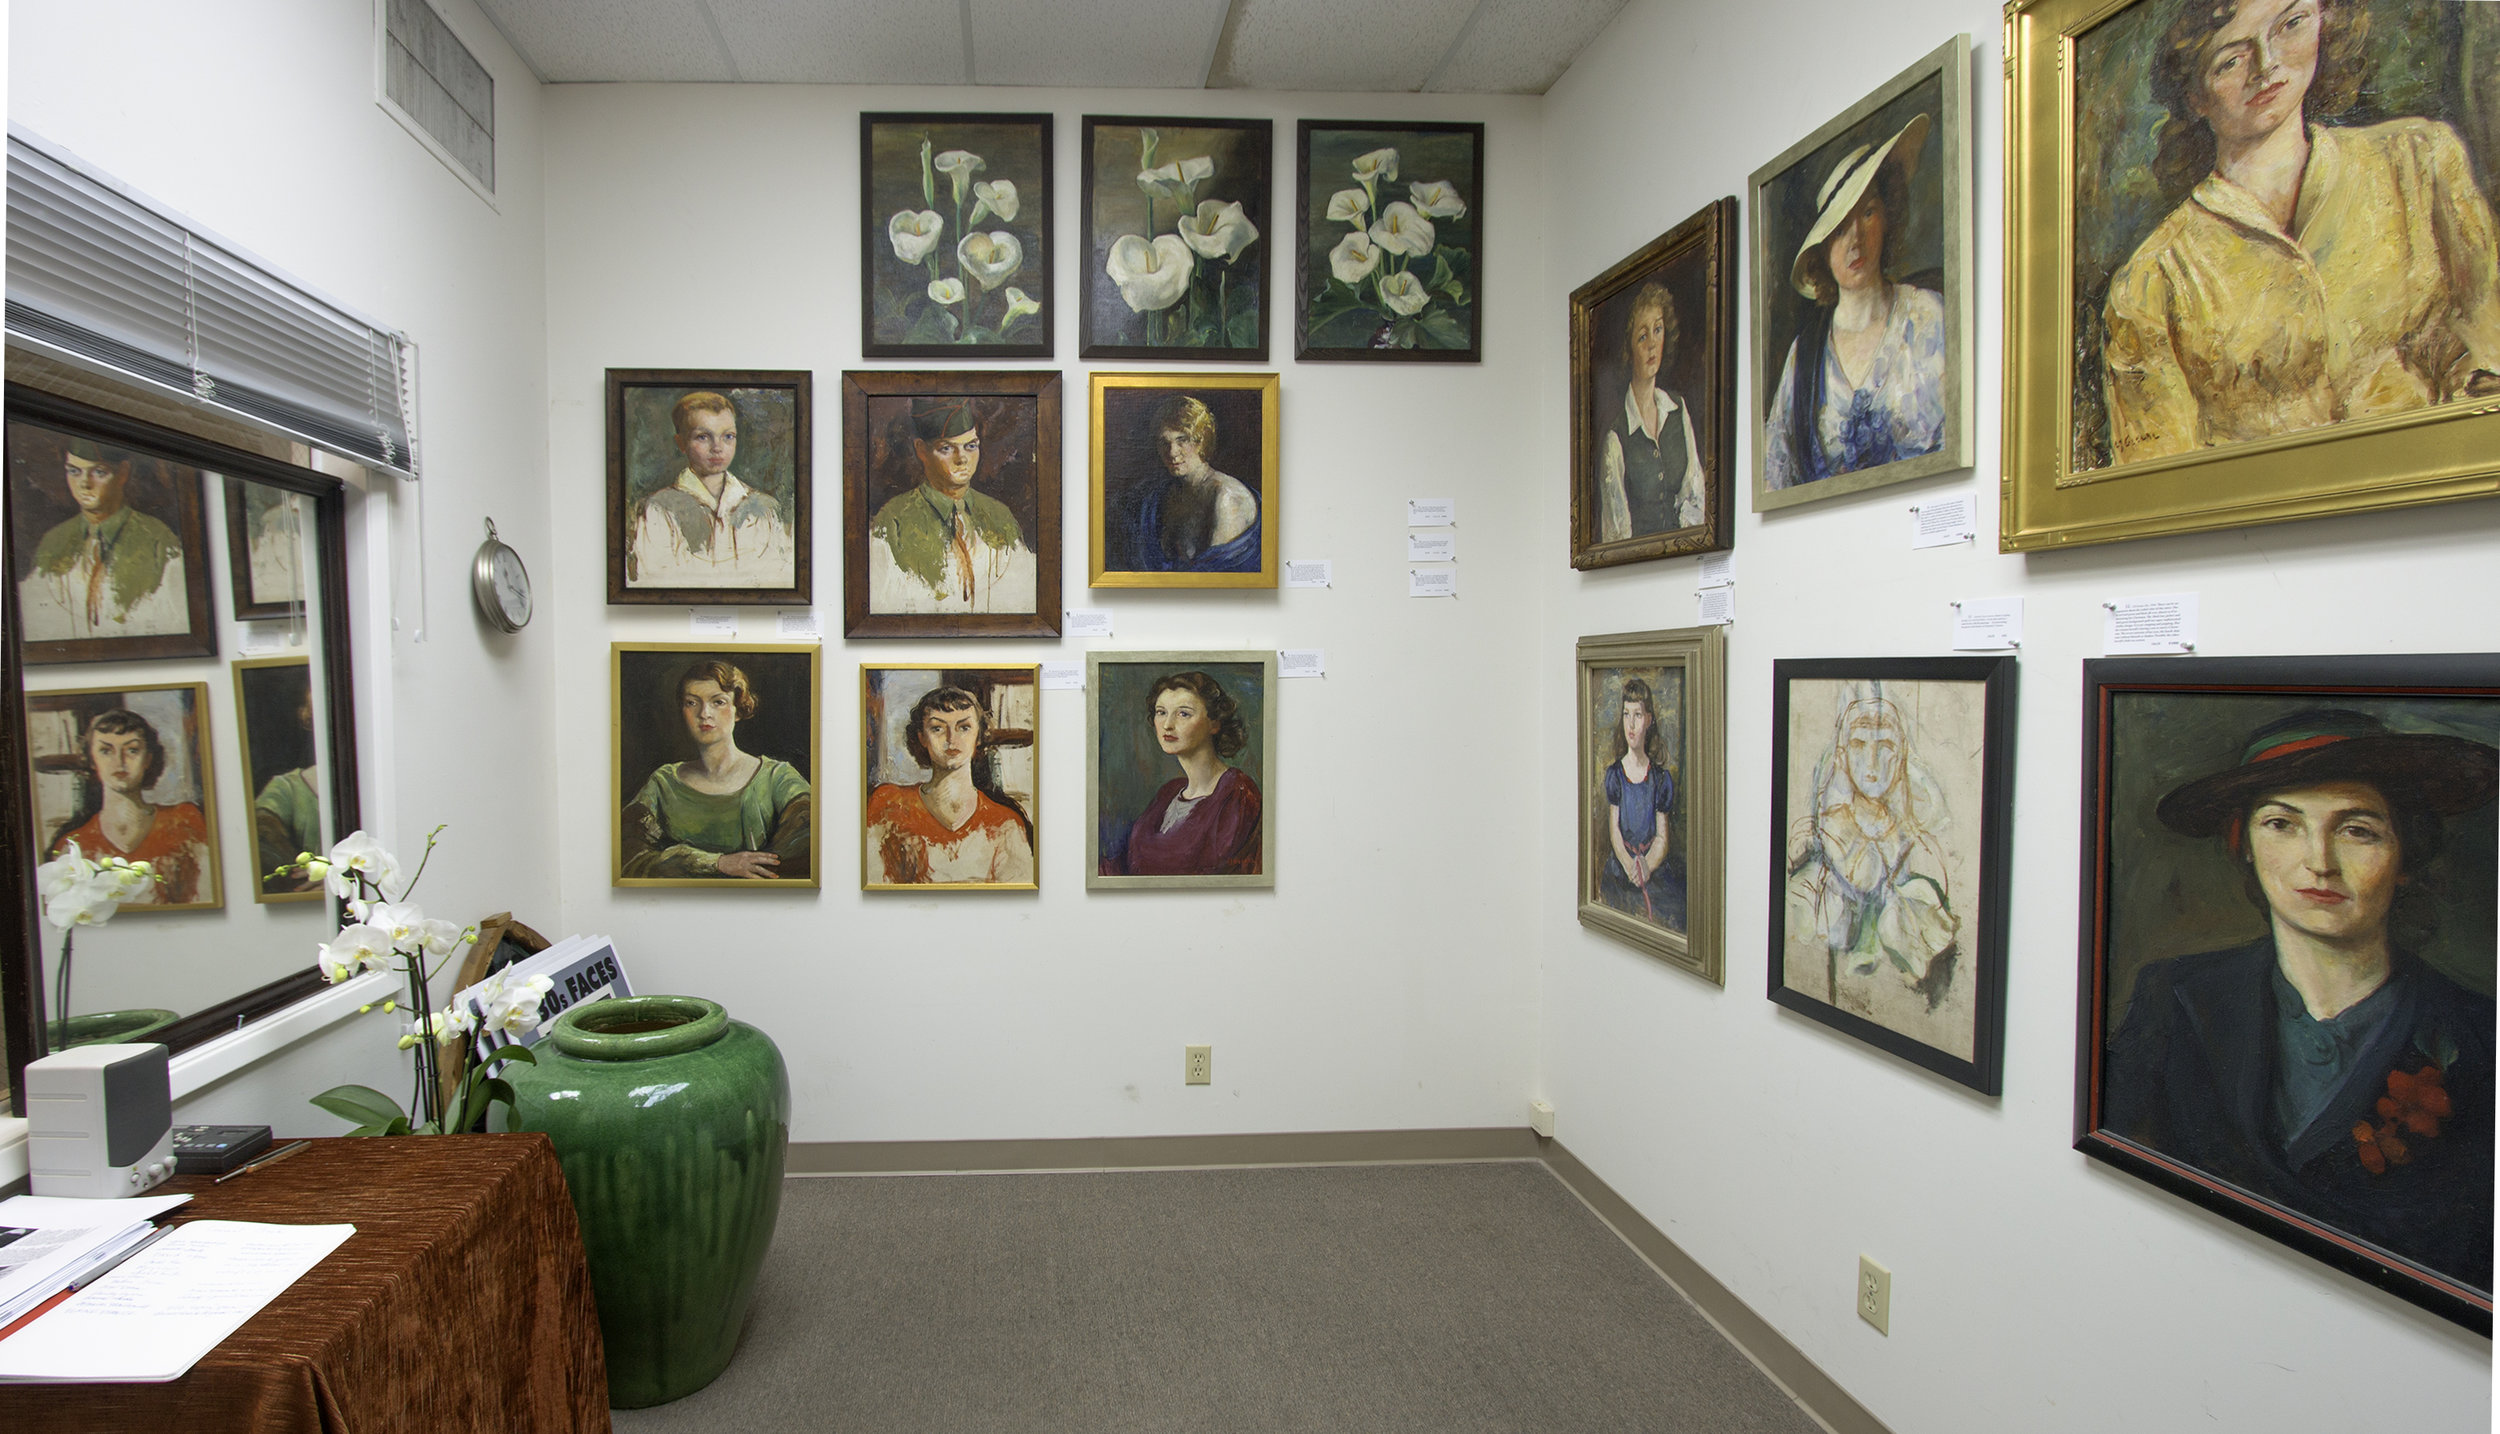 Henry Null collection of Antonia Greene paintings, mostly portraits, mostly from 1930's. Gallery show January 2018 Santa Barbara.